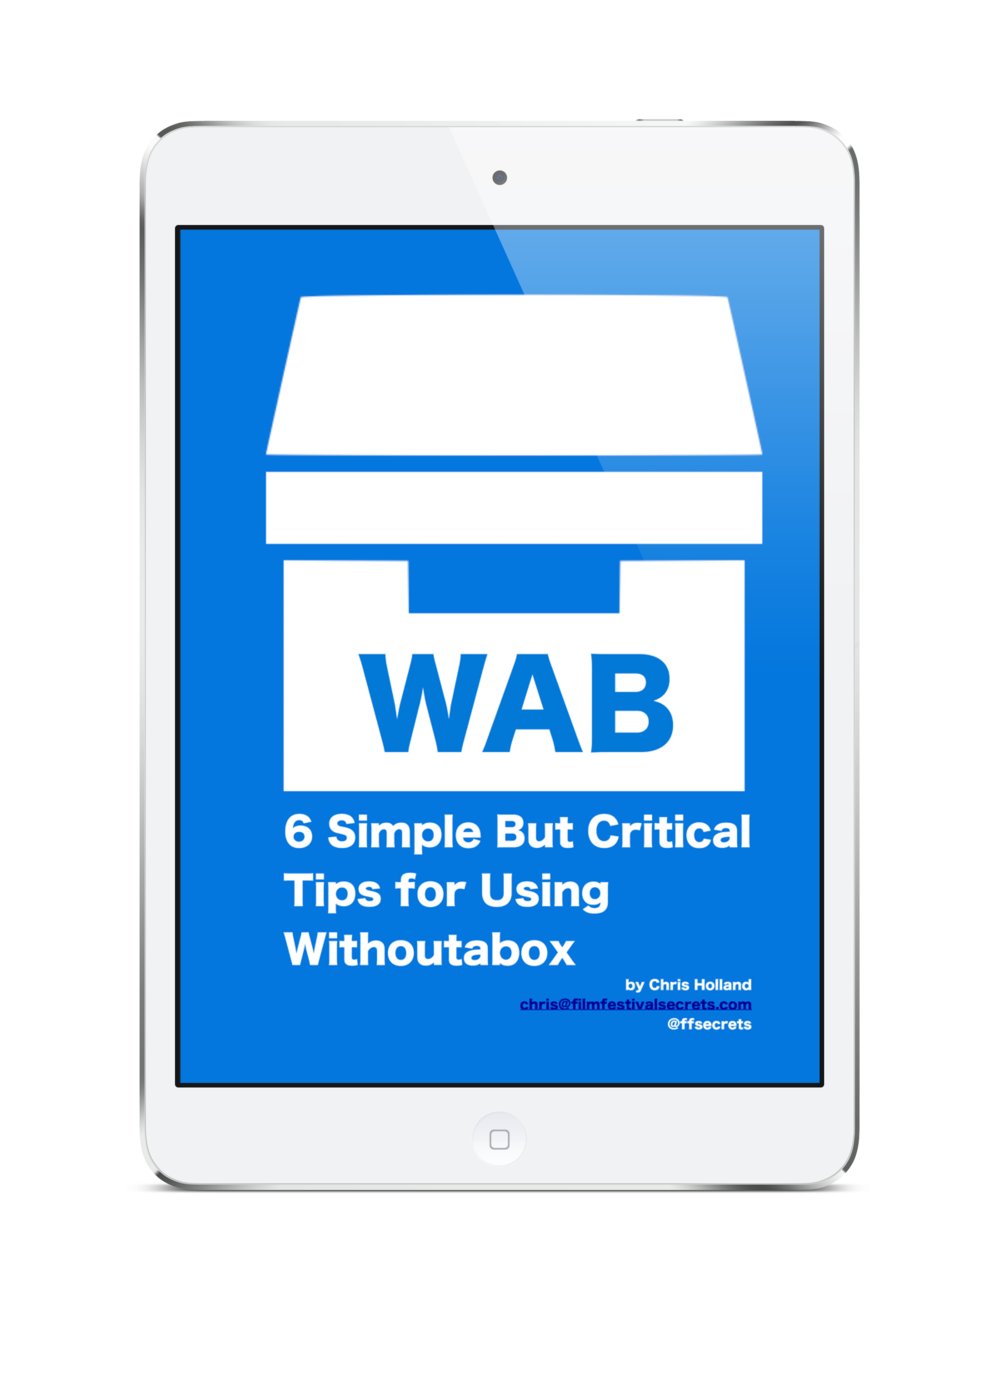 6 Simple But Critical Tips for Using Withoutabox